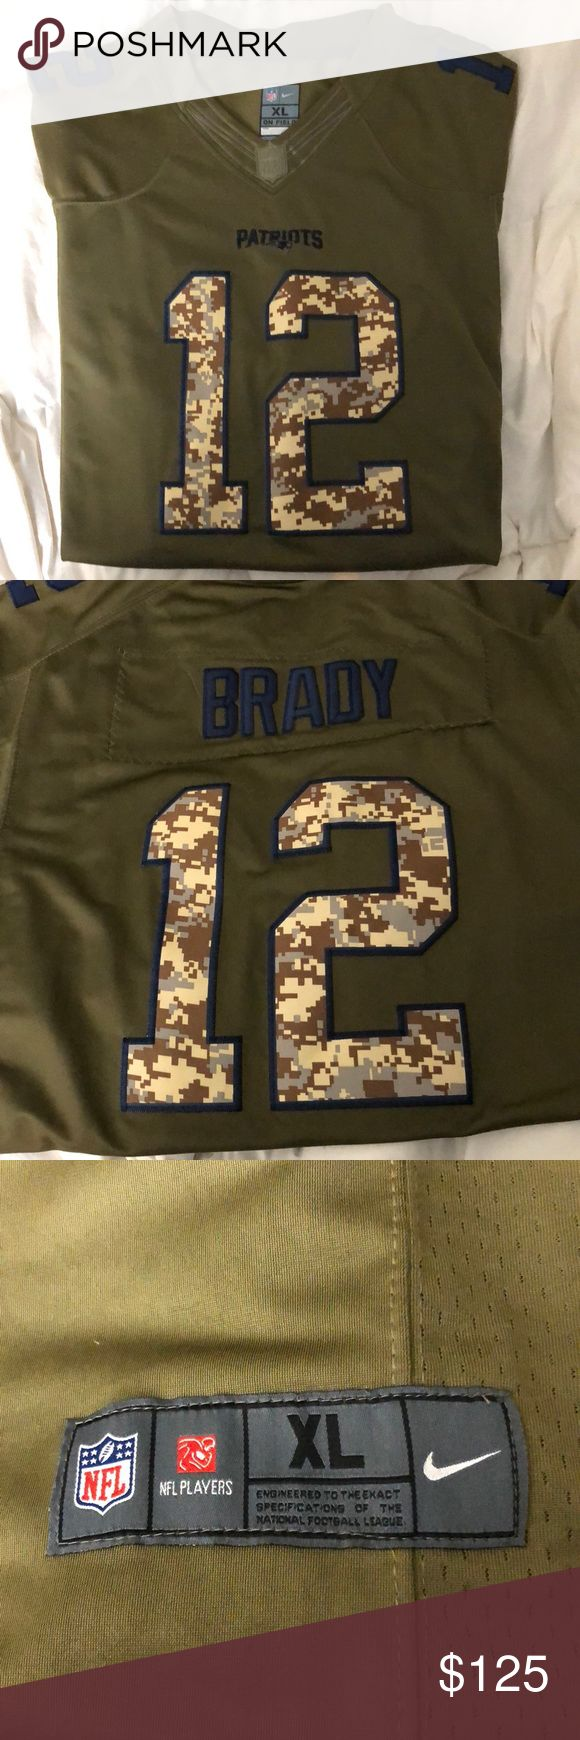 New England Patriots Salute to Service Jersey New England Patriots Salute to Service Jersey   Tom Brady 12   NWT   Men's XL   Reasonable offers welcome 😊 Nike Shirts